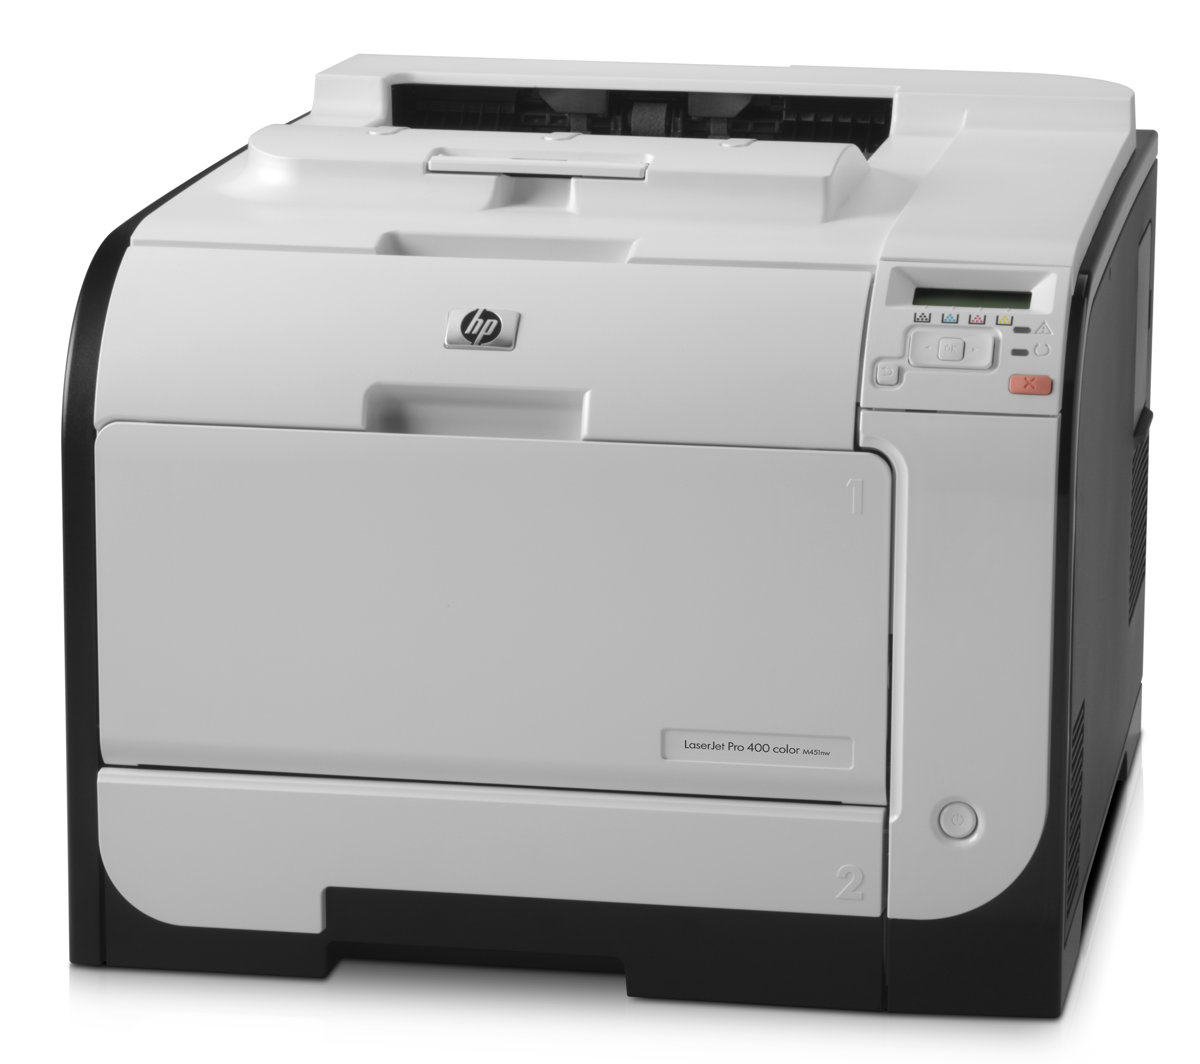 Best color printing quality - Hp Laserjet Pro 400 Wireless Color Laser Printer M451nw By Office Depot Officemax